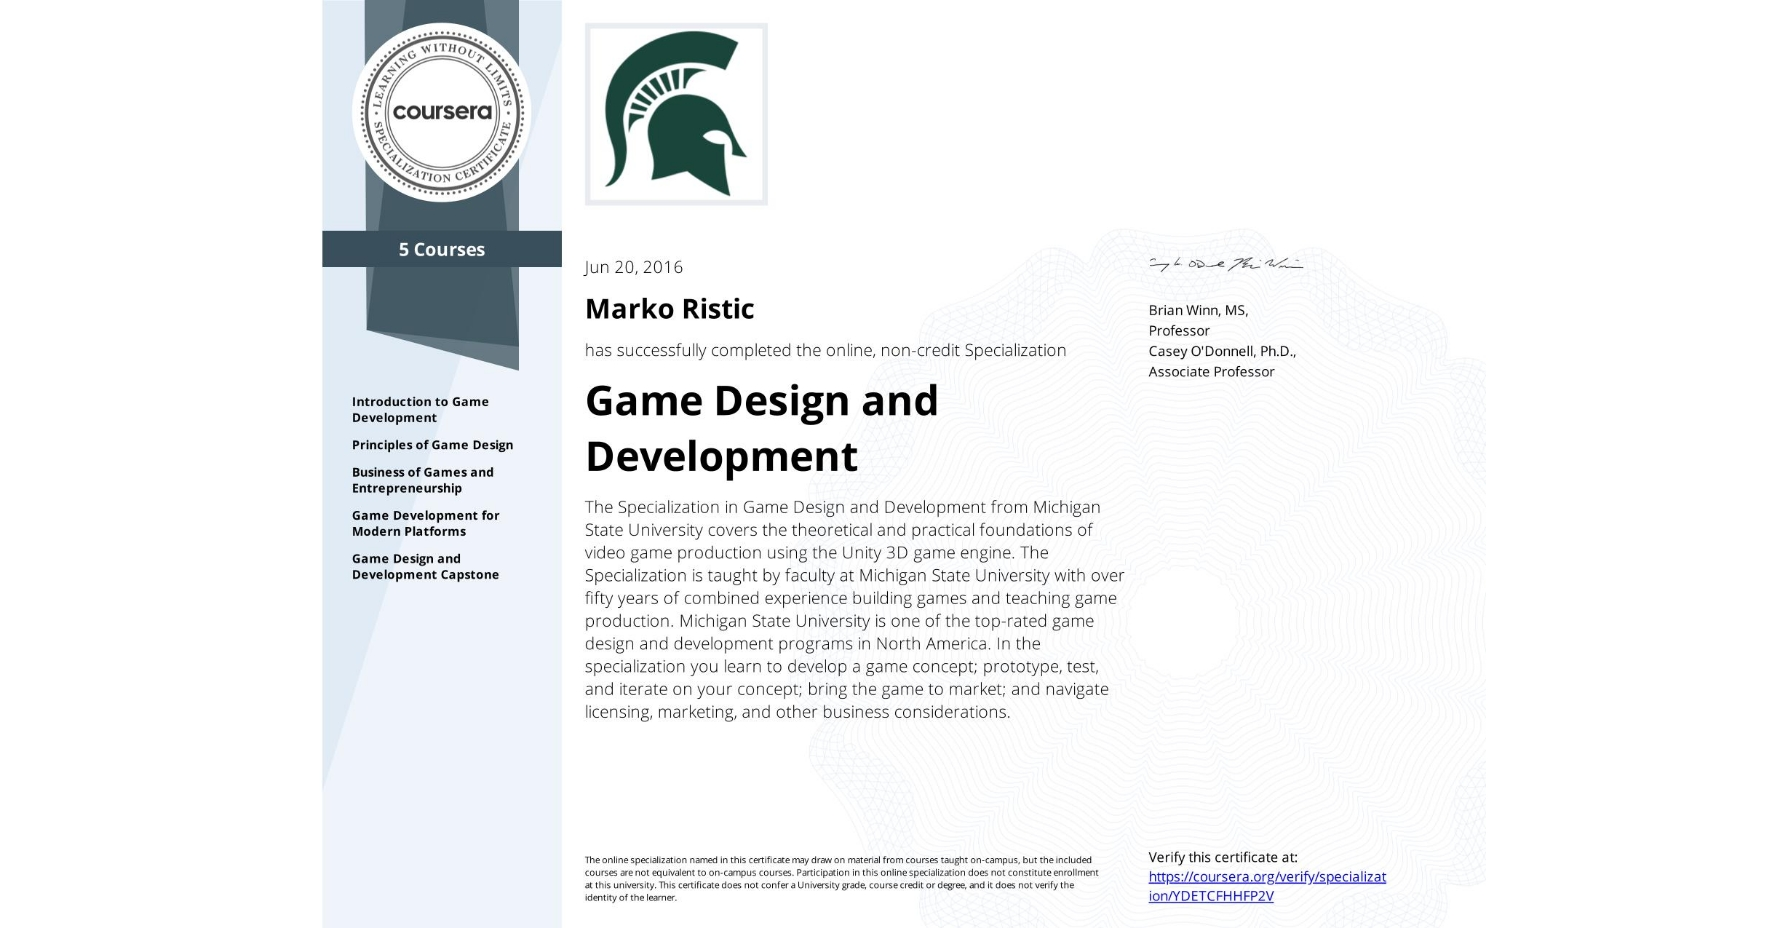 View certificate for Marko Ristic, Game Design and Development, offered through Coursera. The Specialization in Game Design and Development from Michigan State University covers the theoretical and practical foundations of video game production using the Unity 3D game engine. The Specialization is taught by faculty at Michigan State University with over fifty years of combined experience building games and teaching game production. Michigan State University is one of the top-rated game design and development programs in North America. In the specialization you learn to develop a game concept; prototype, test, and iterate on your concept; bring the game to market; and navigate licensing, marketing, and other business considerations.